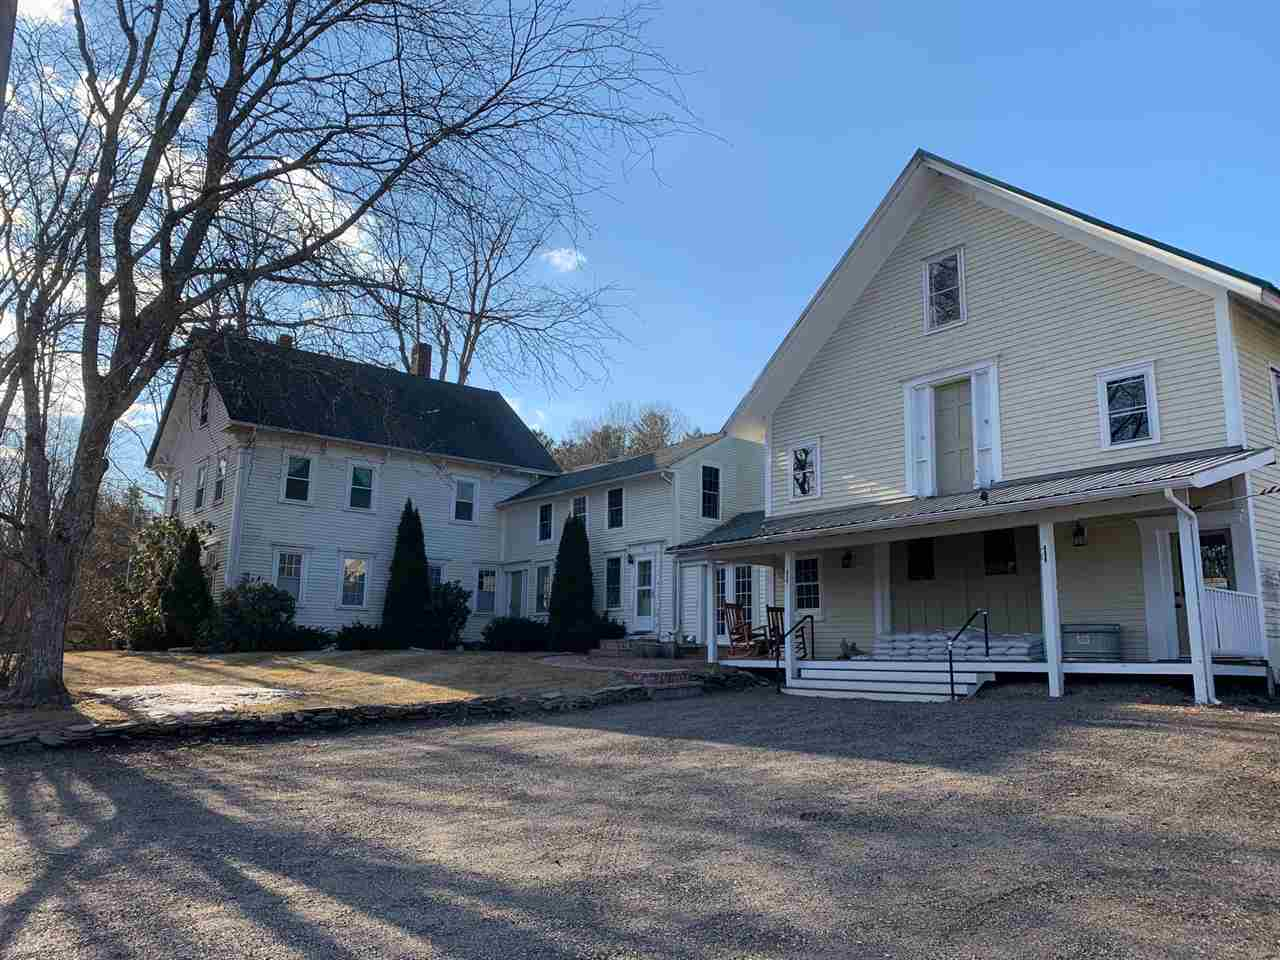 Photo of 57 Pleasant Street Epping NH 03042